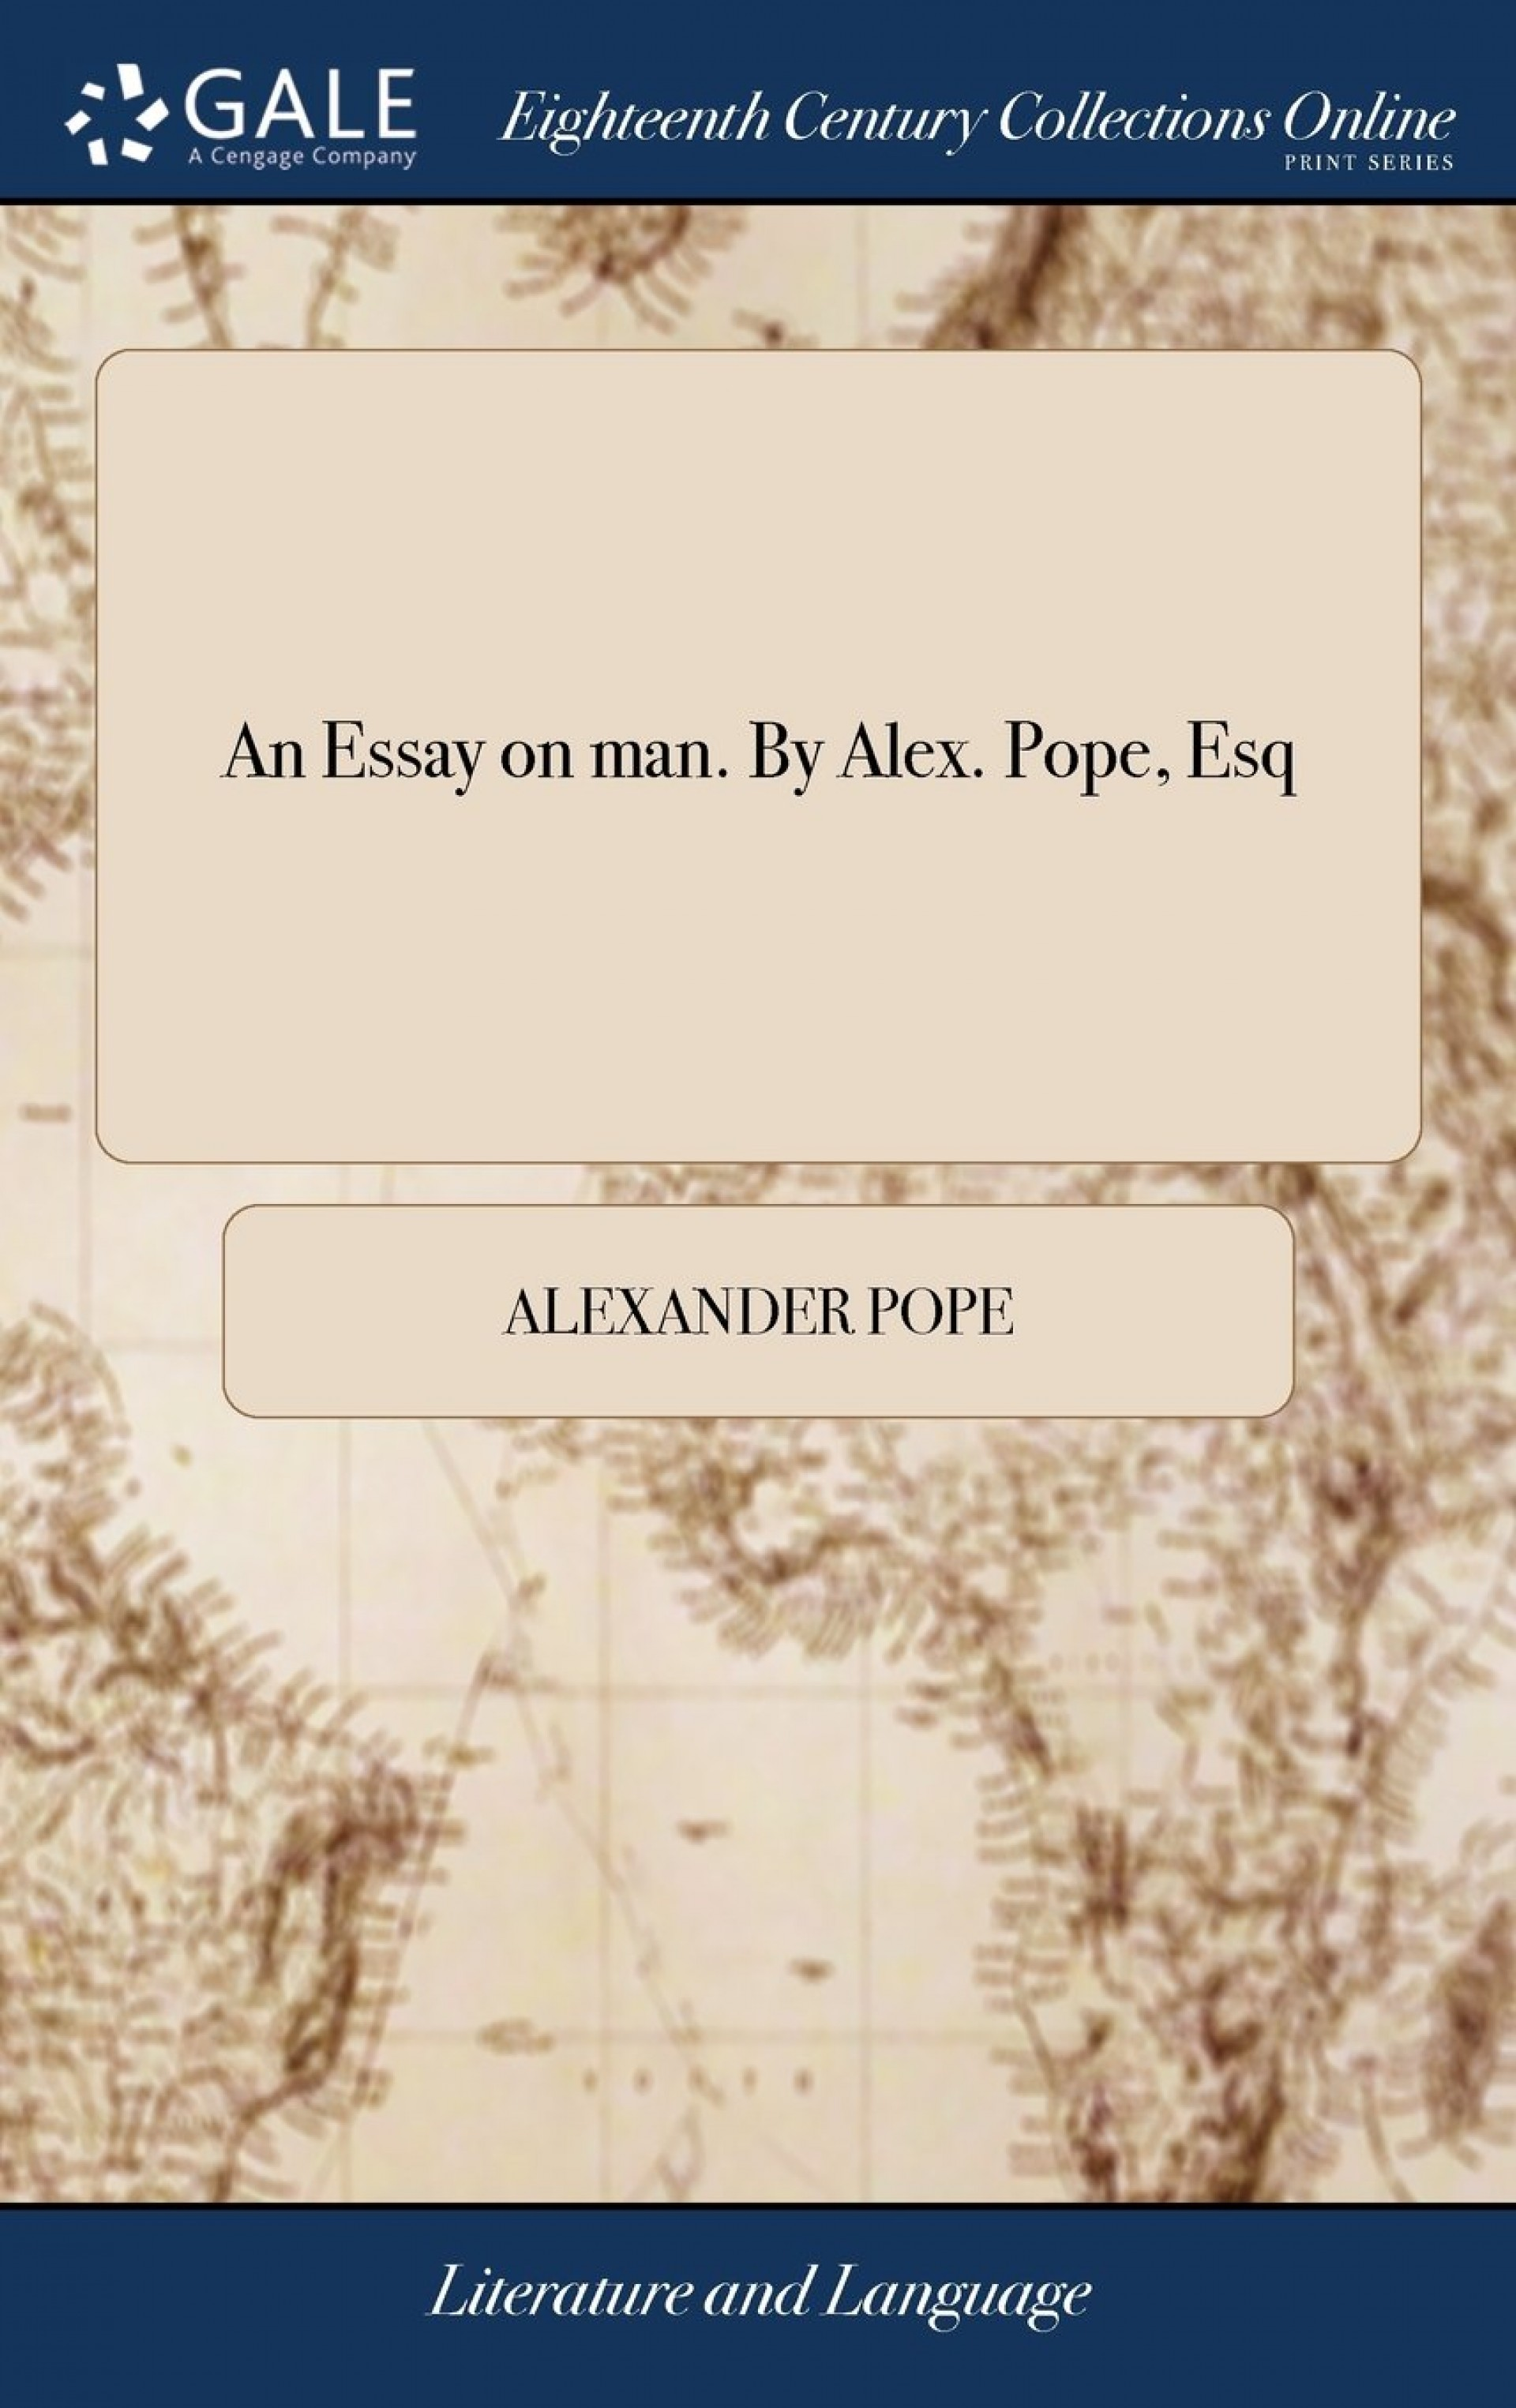 014 Essay Example 617va Jeysl Alexander Pope An On Awesome Man Analysis Summary In Hindi Sparknotes 1920